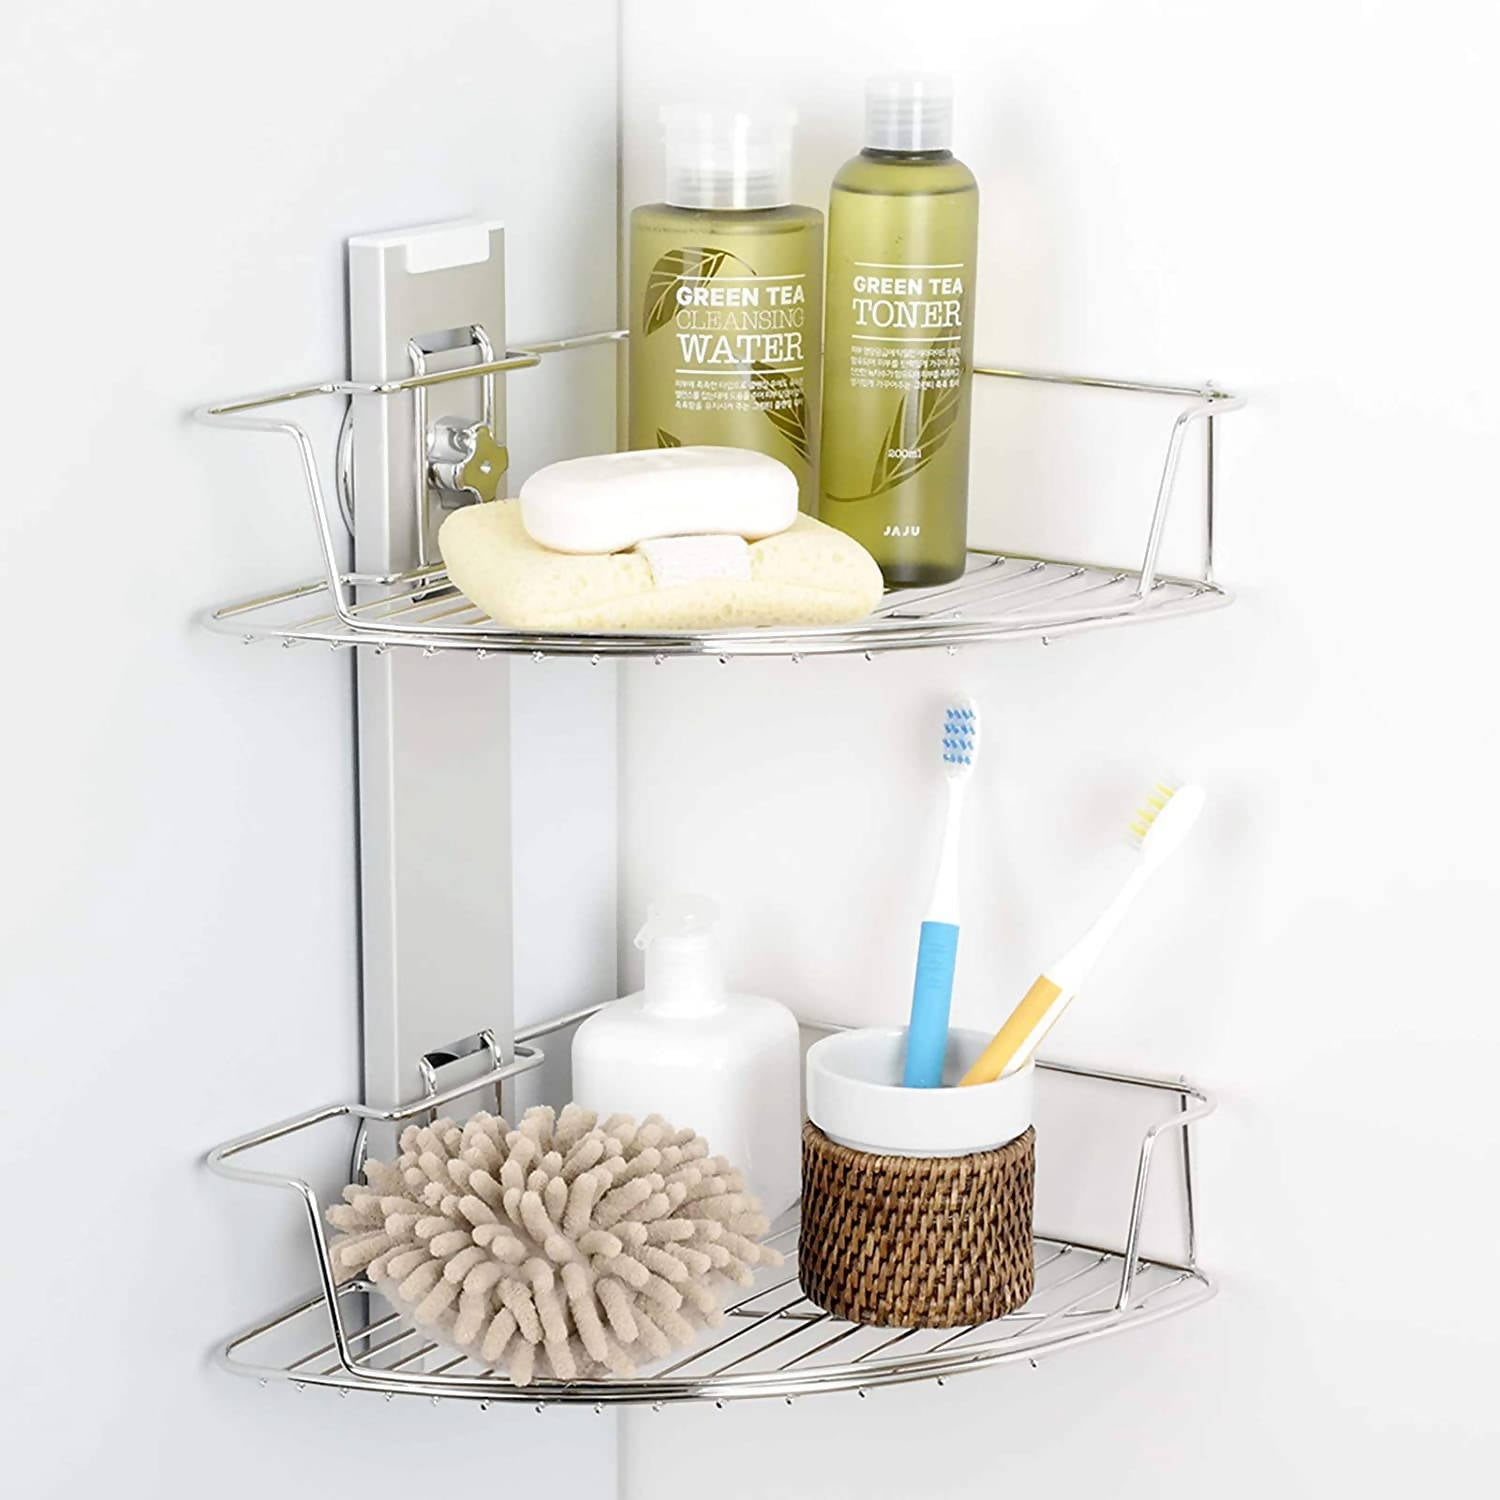 SHOWER CADDY SUCTION CUP 2TIER CORNER SHOWER SHELF